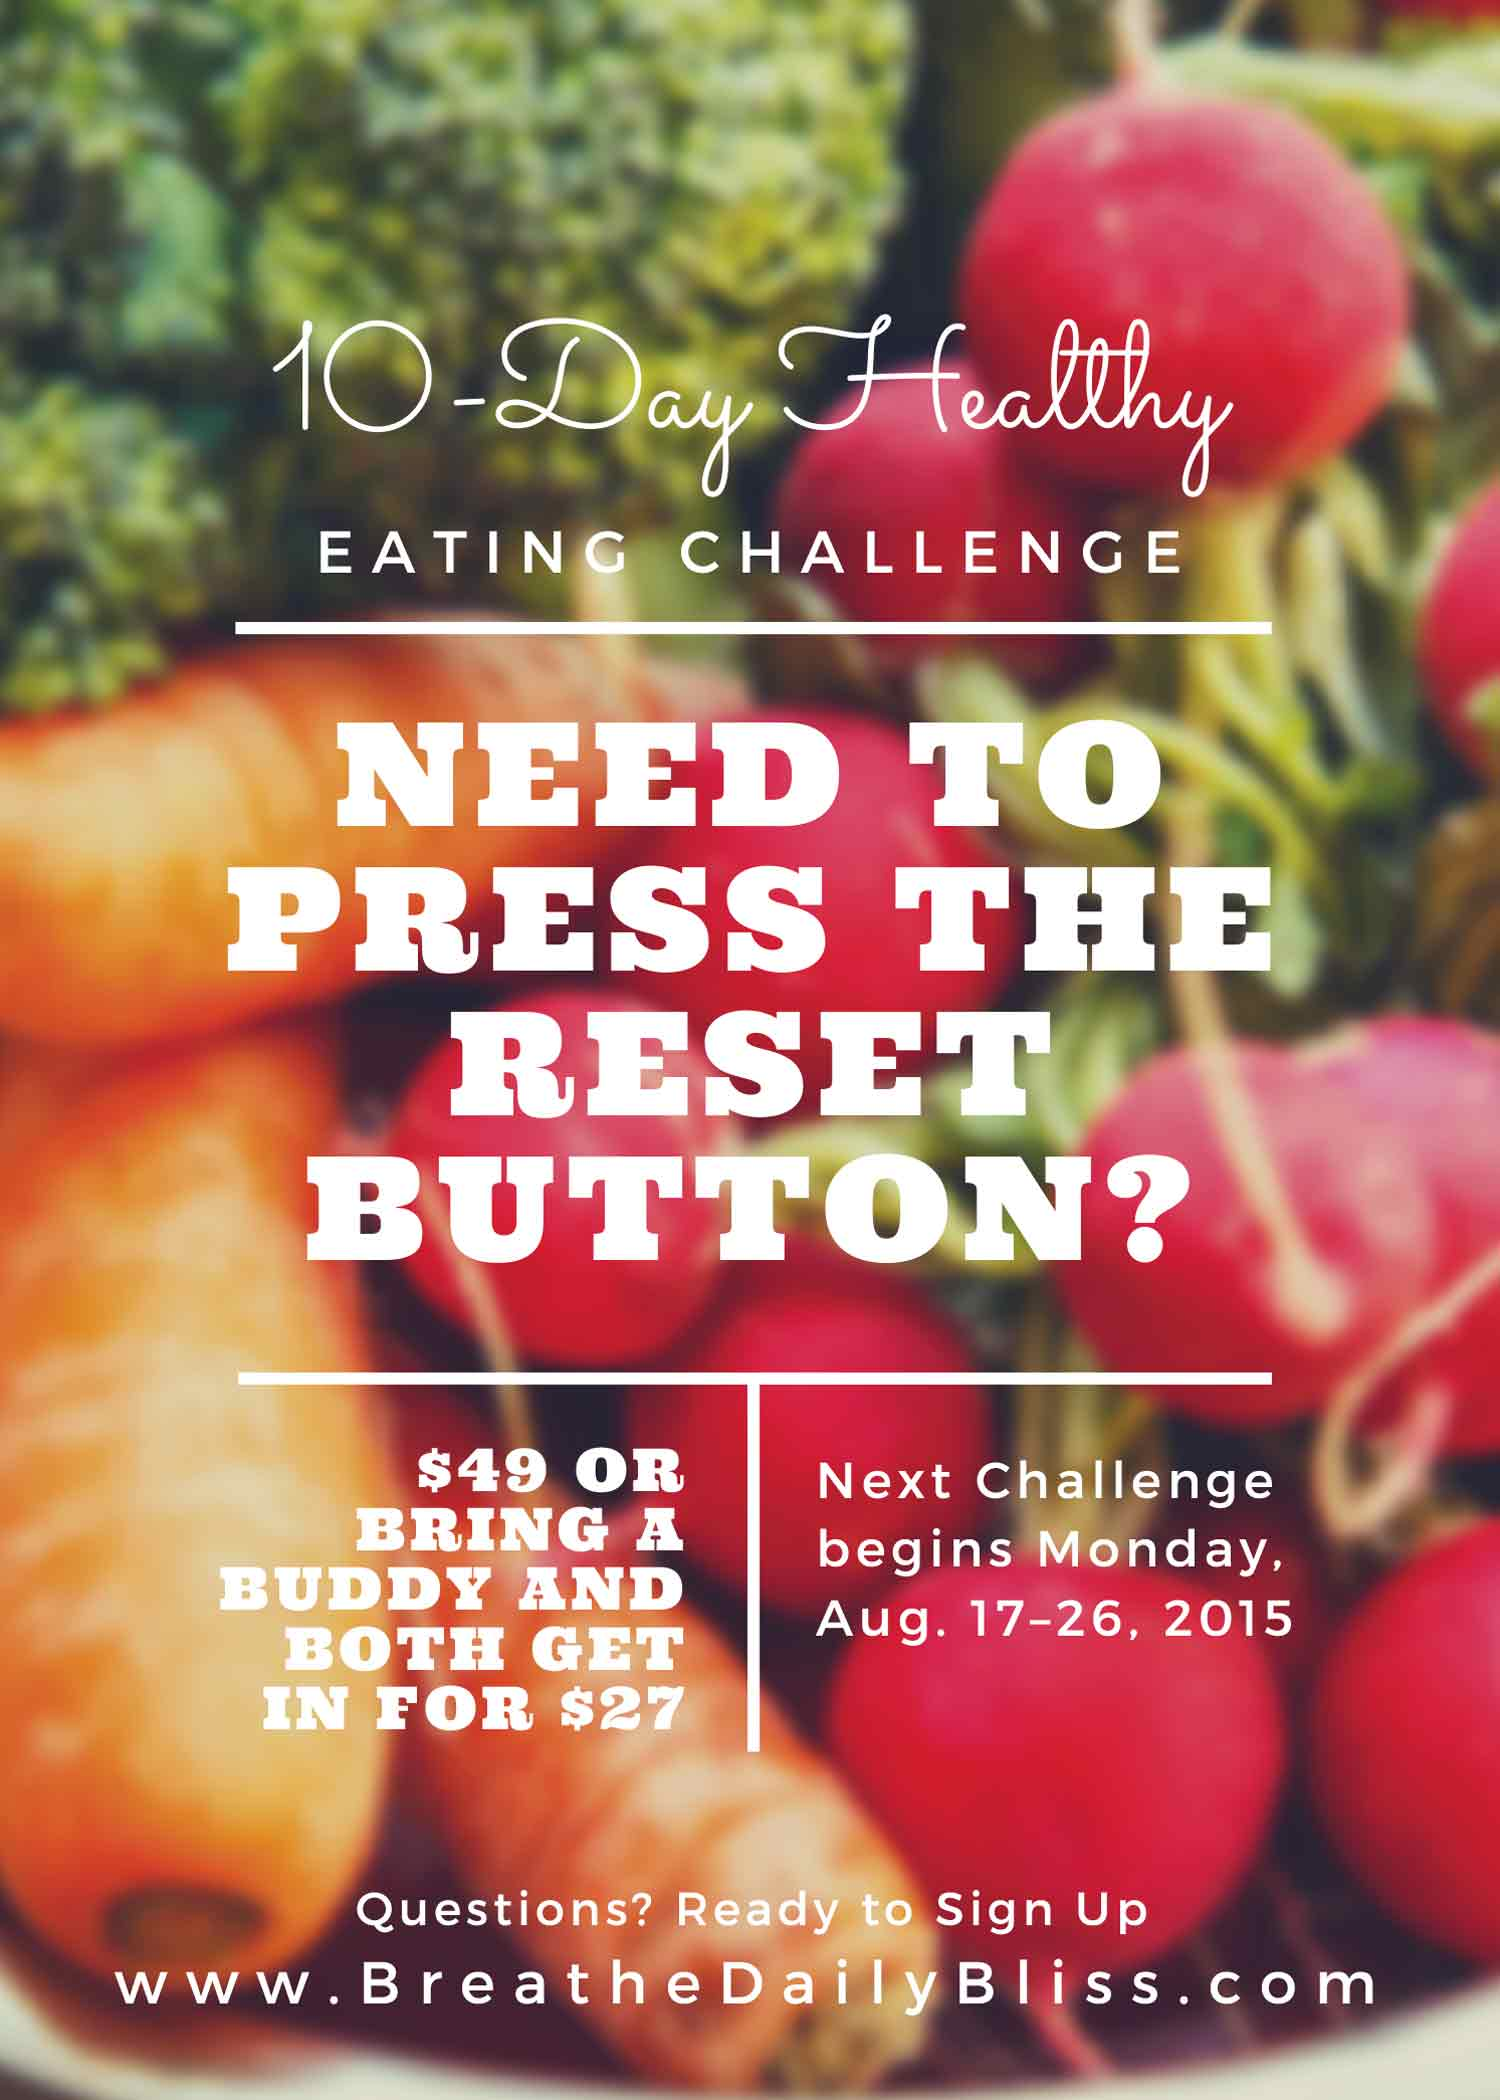 10 Day Healthy Eating Challenge Breathe Daily Bliss .